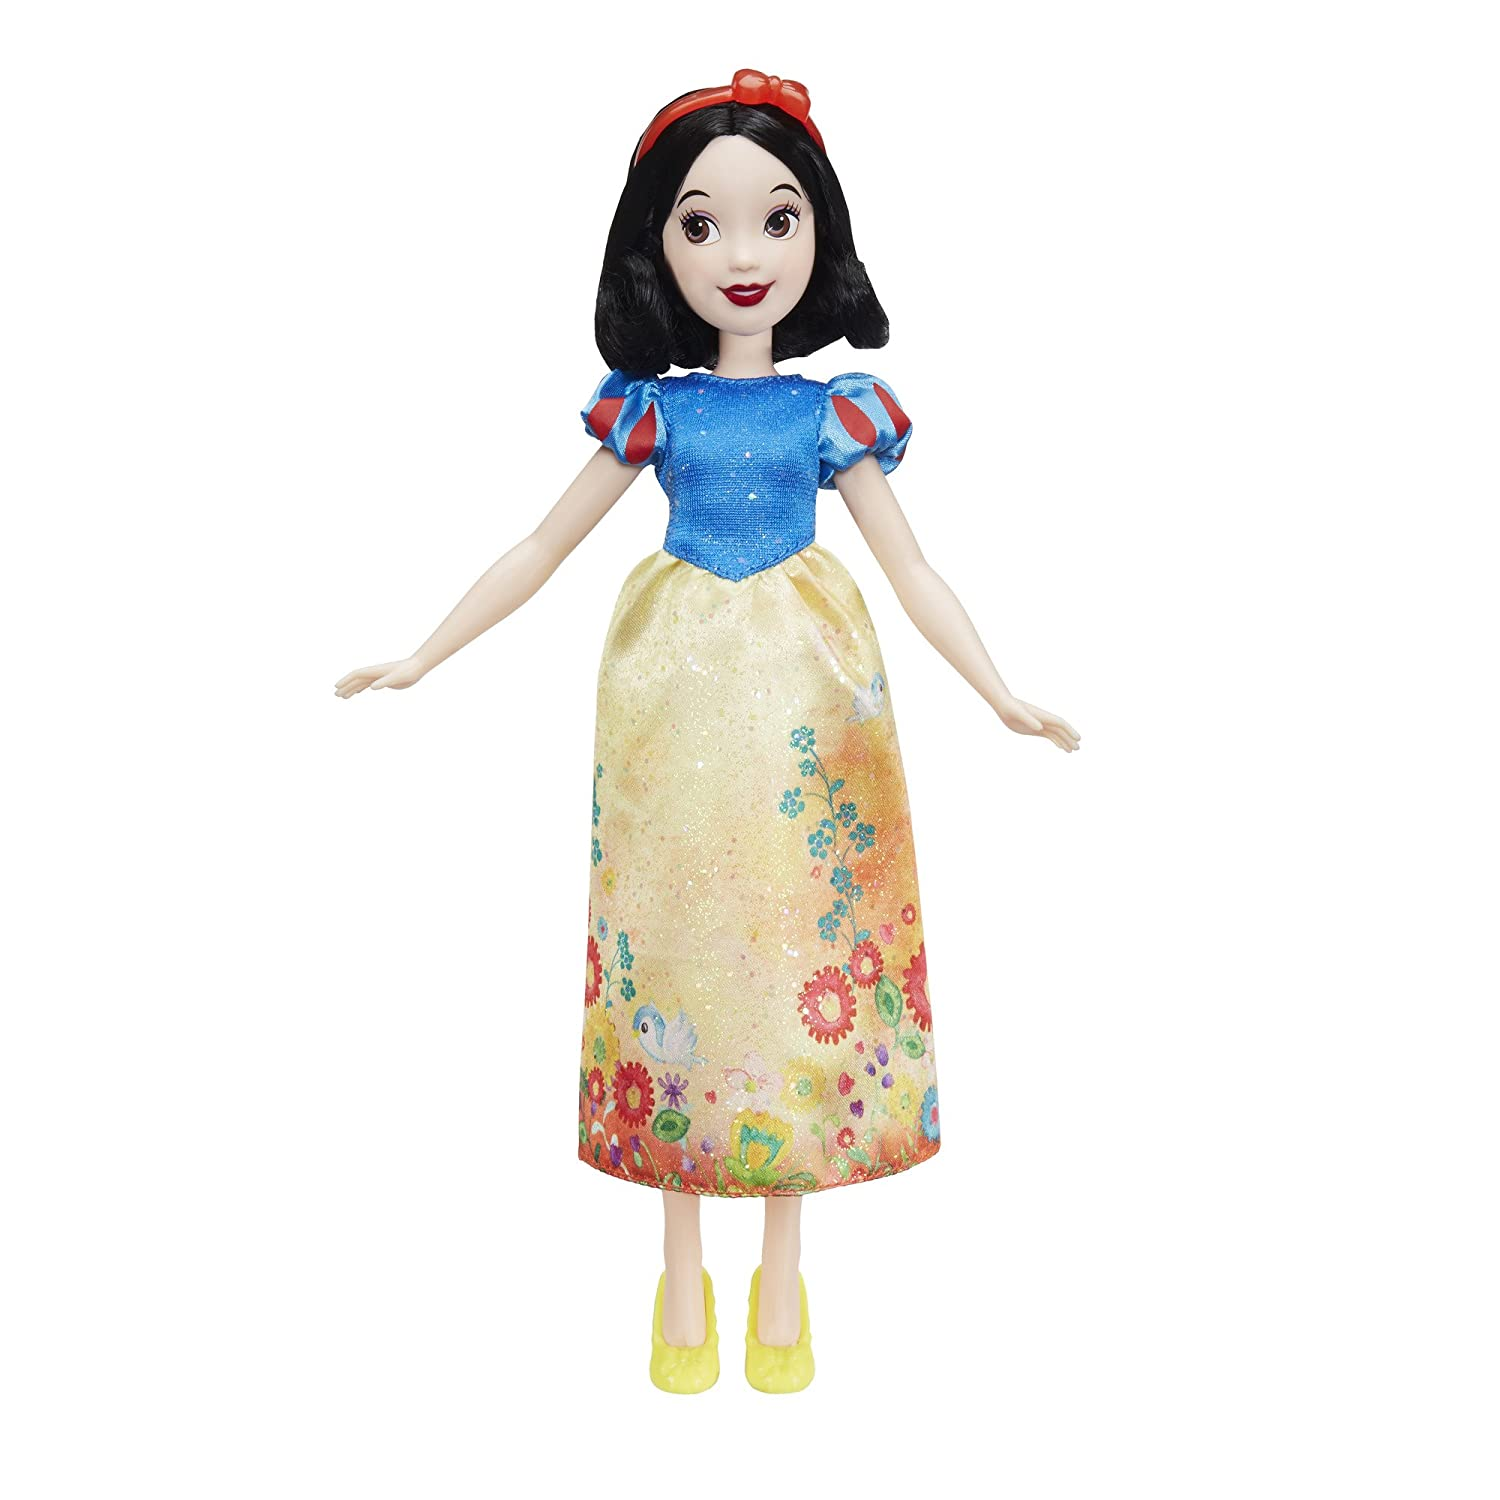 Disney Princess Royal Shimmer Snow White Doll Hasbro E0275